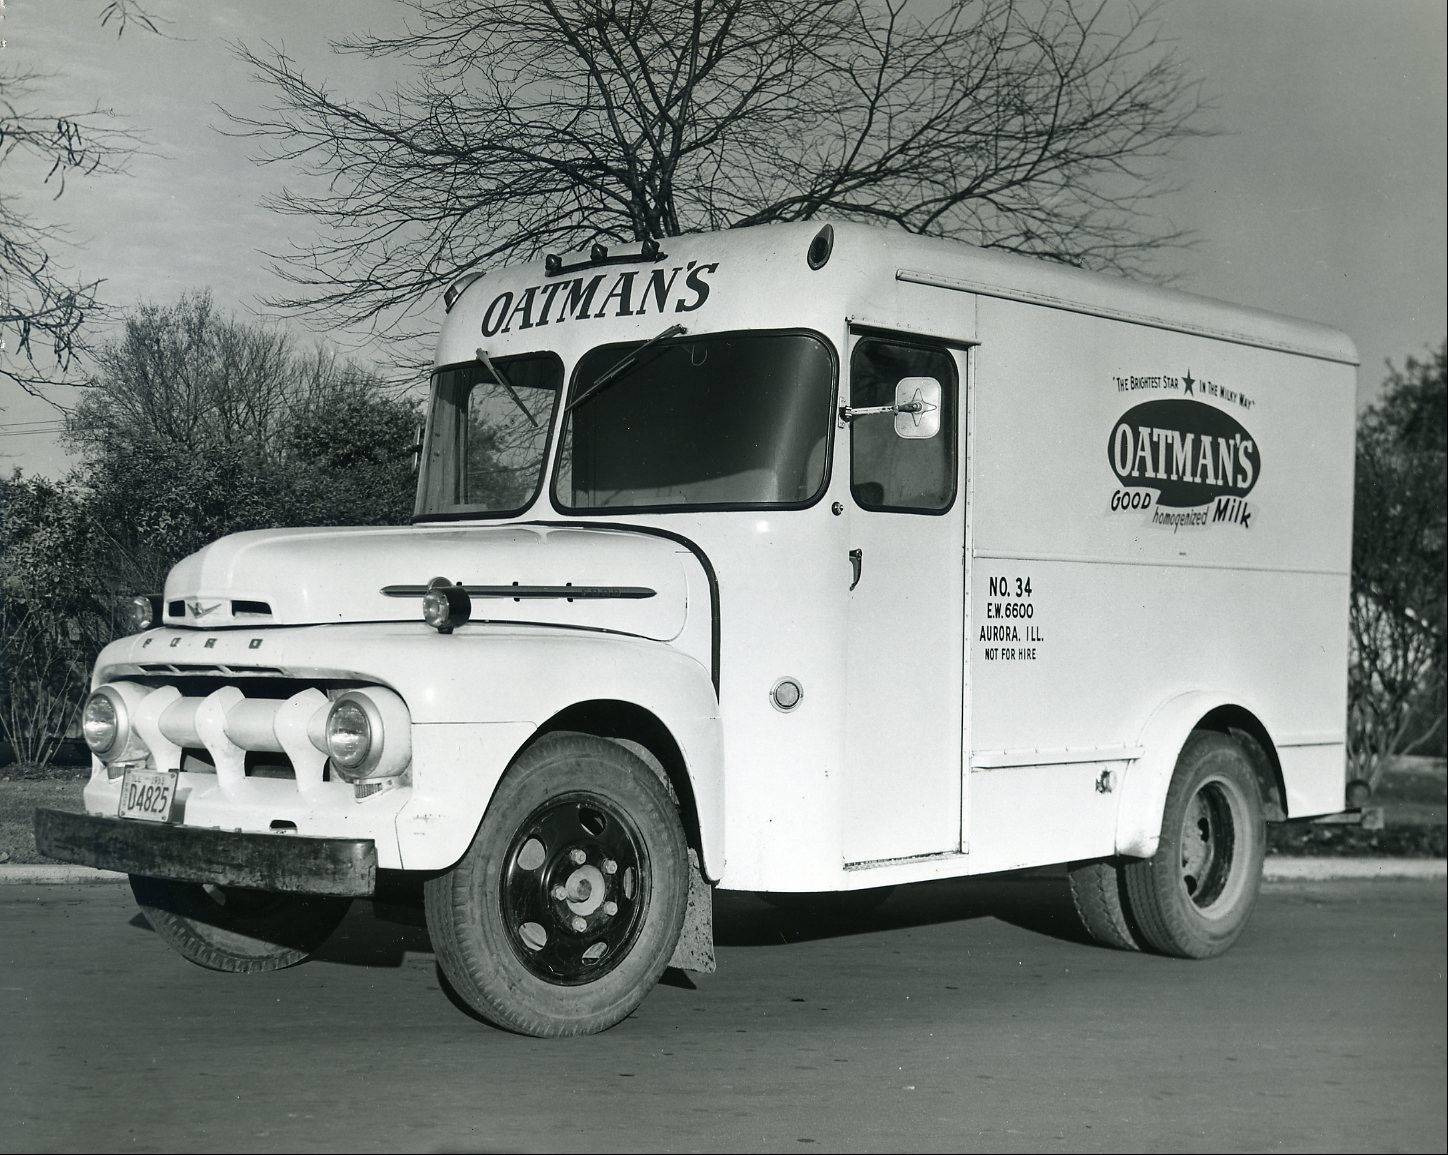 Oatman's Dairy Truck in 1953. By the 1940s, Oatman's had replaced its horse-drawn wagons with motorized trucks.